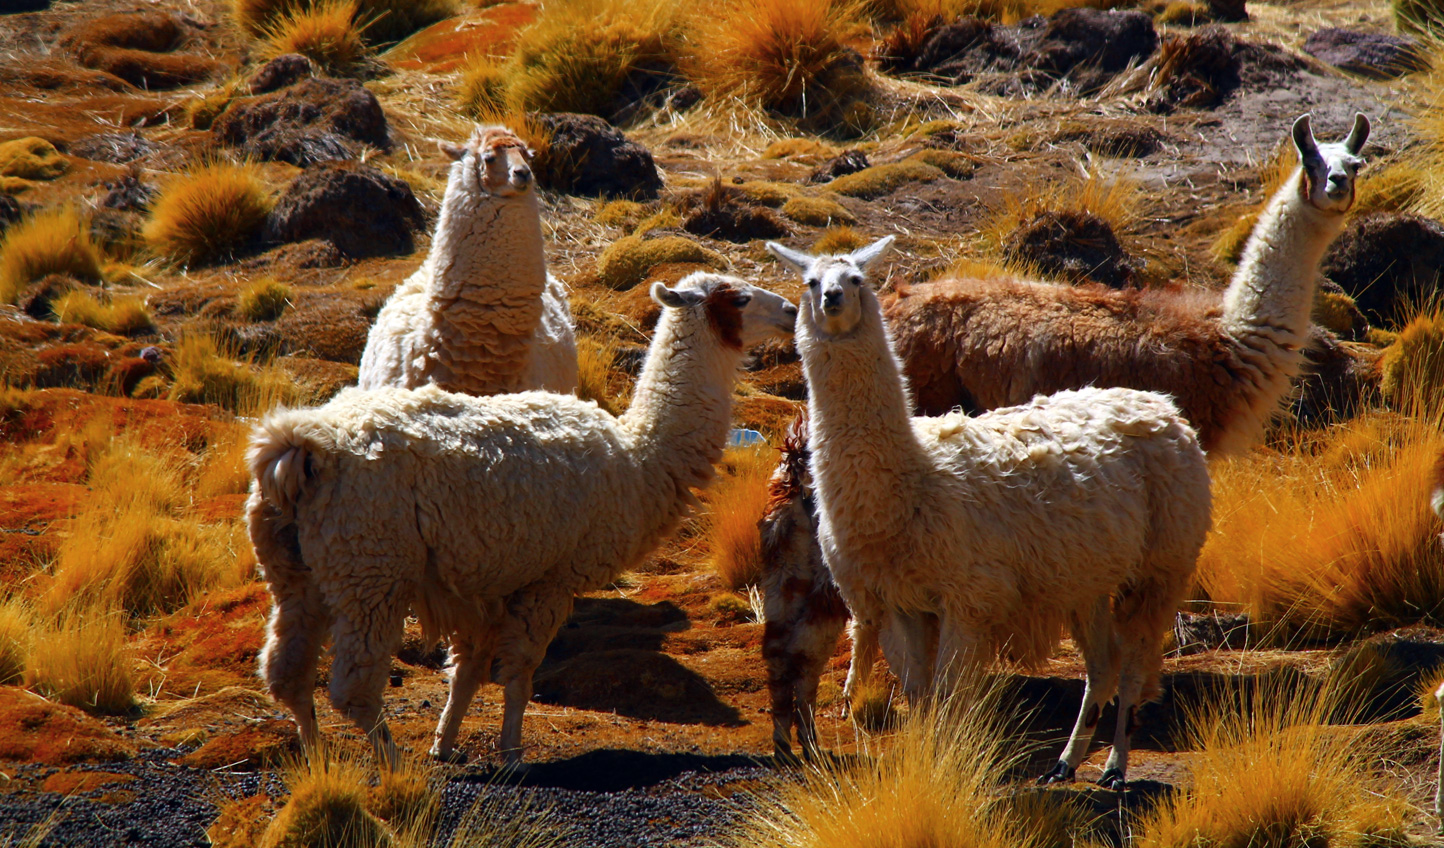 Keep a look out for any wild llamas roaming around in Atacama